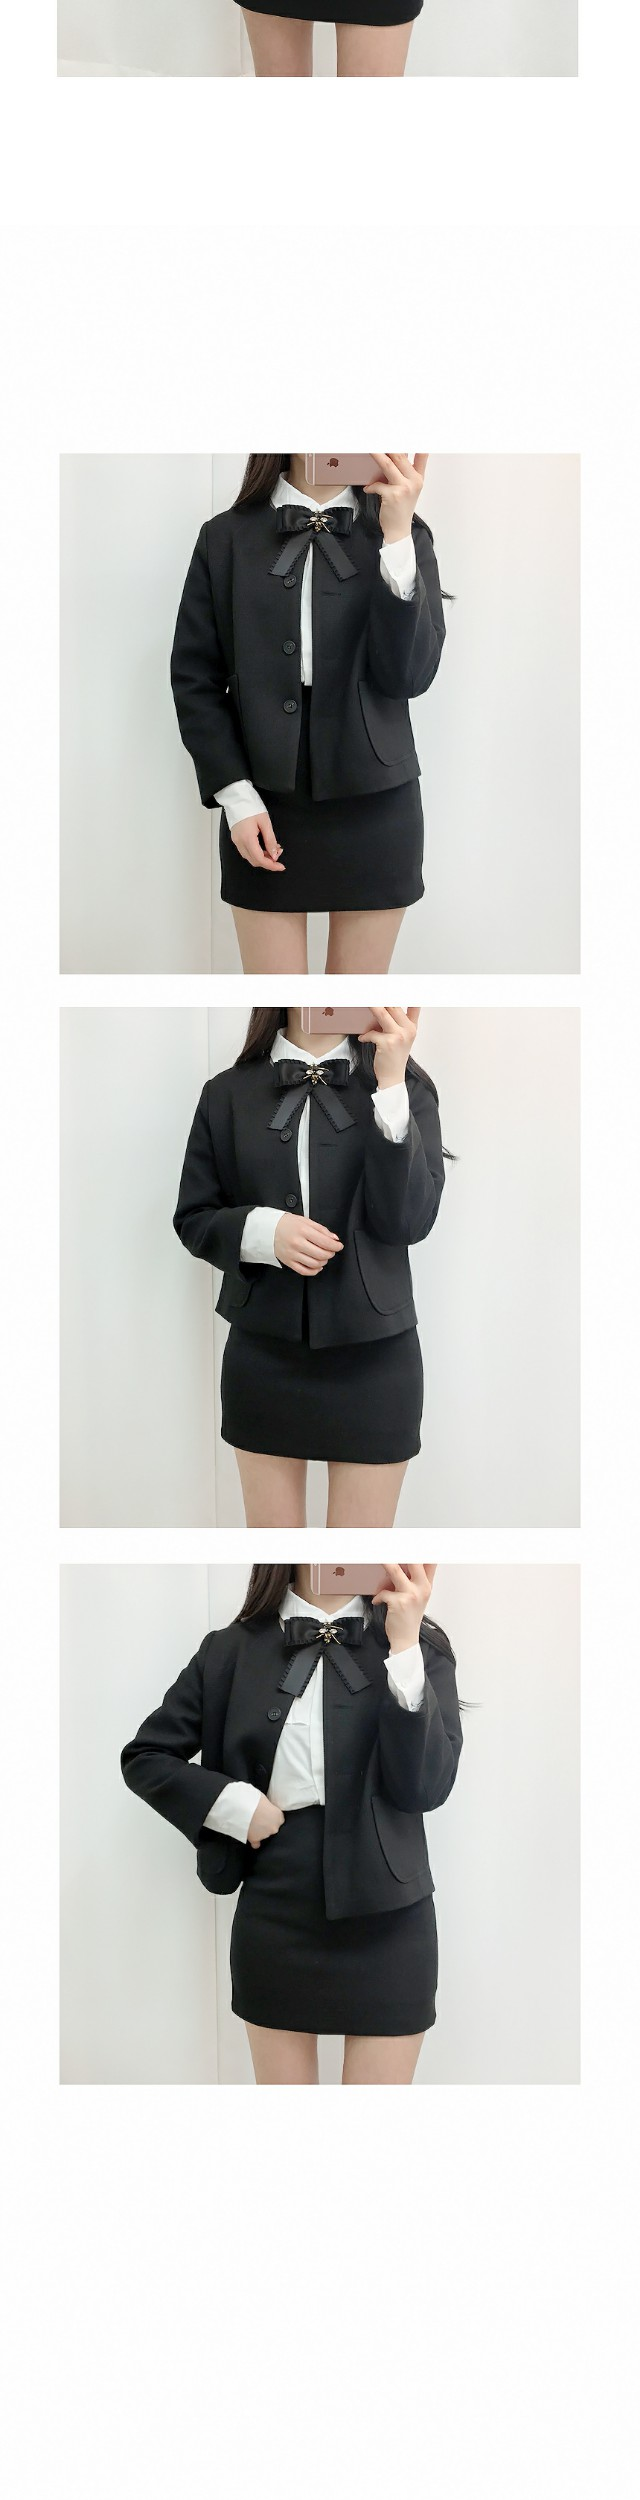 Event discount ♡ opening two piece / jacket + skirt set